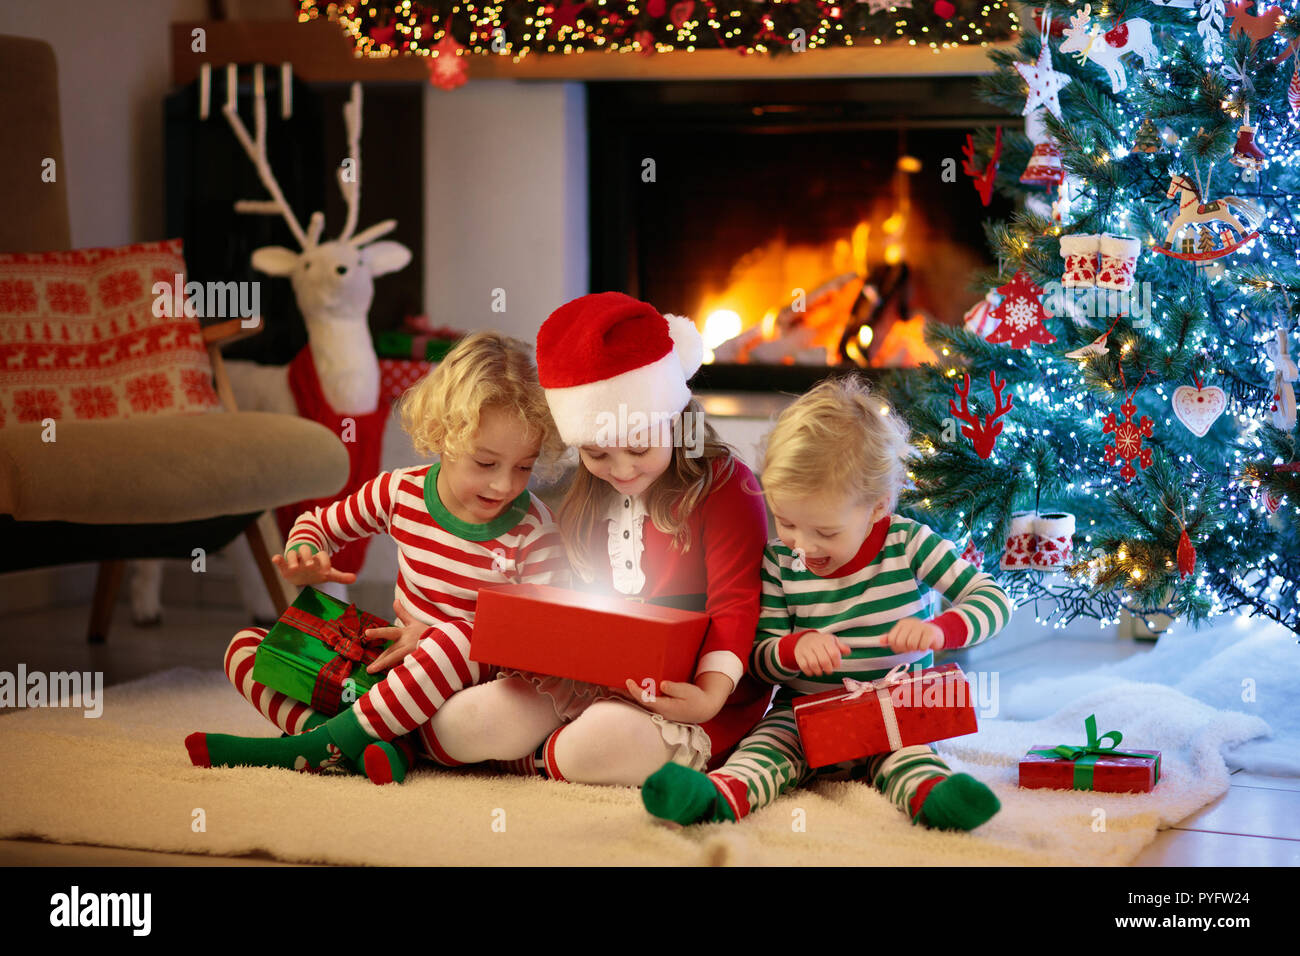 Children at Christmas tree and fireplace on Xmas eve. Family with ...